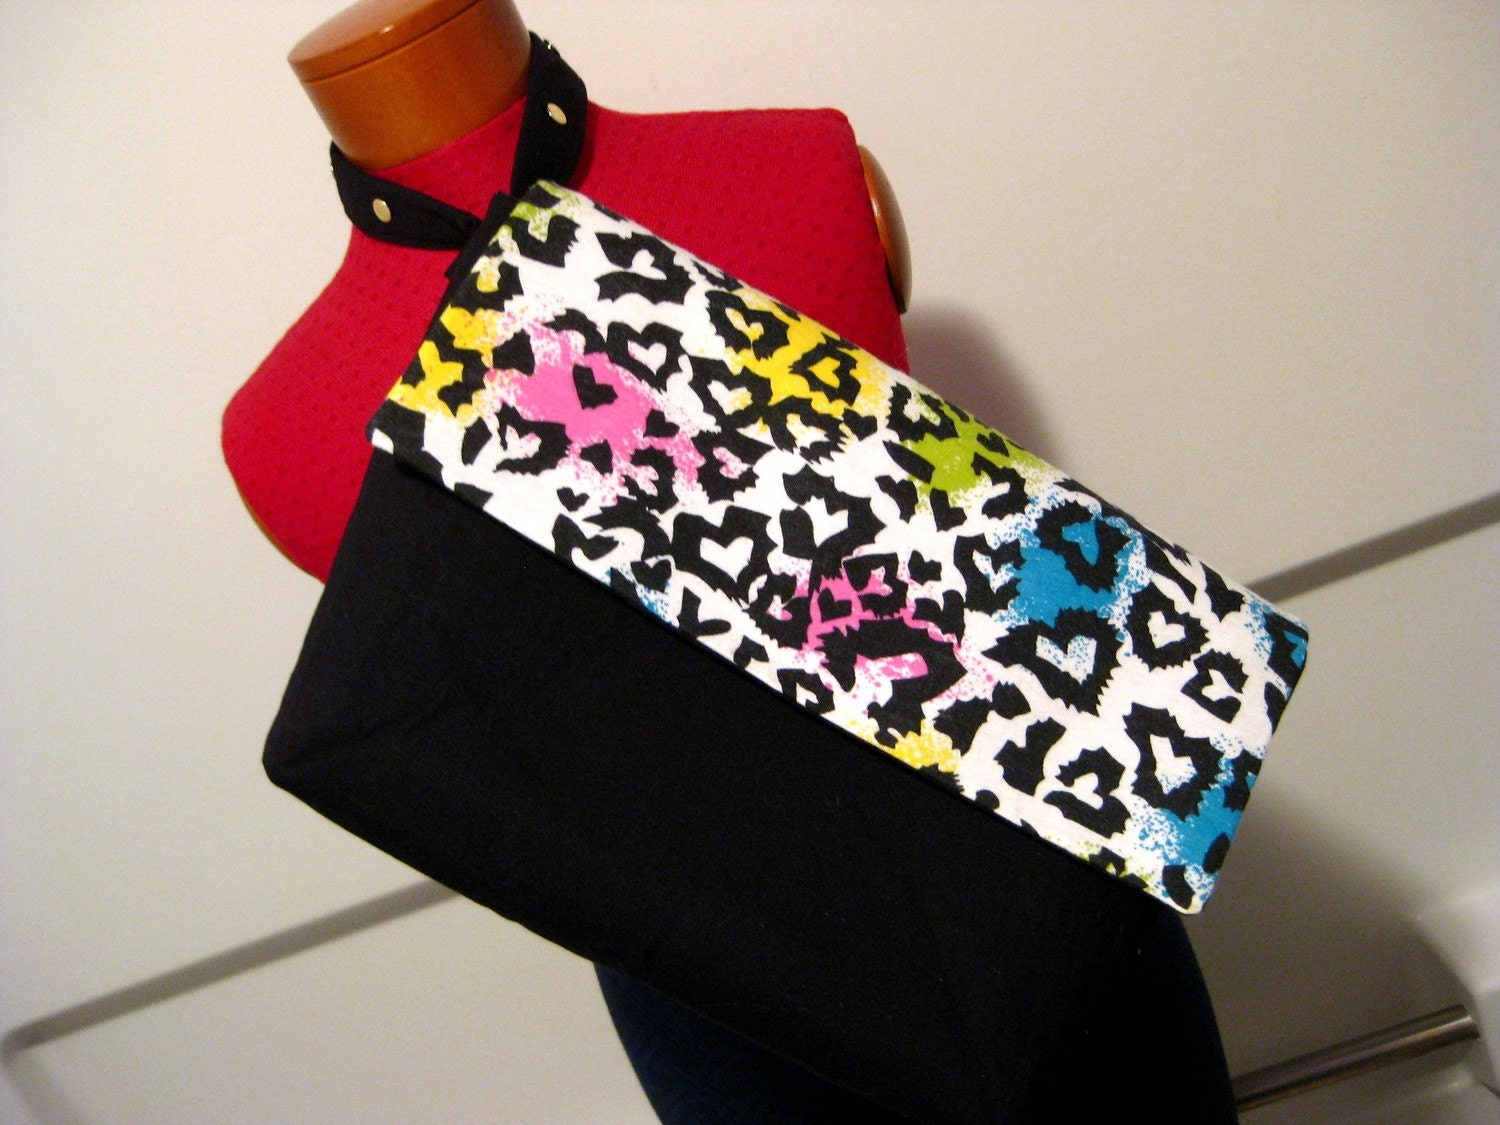 Upcycled Multi-Colored Leopard Print and Black Big Rakc Extra Large Wristlet